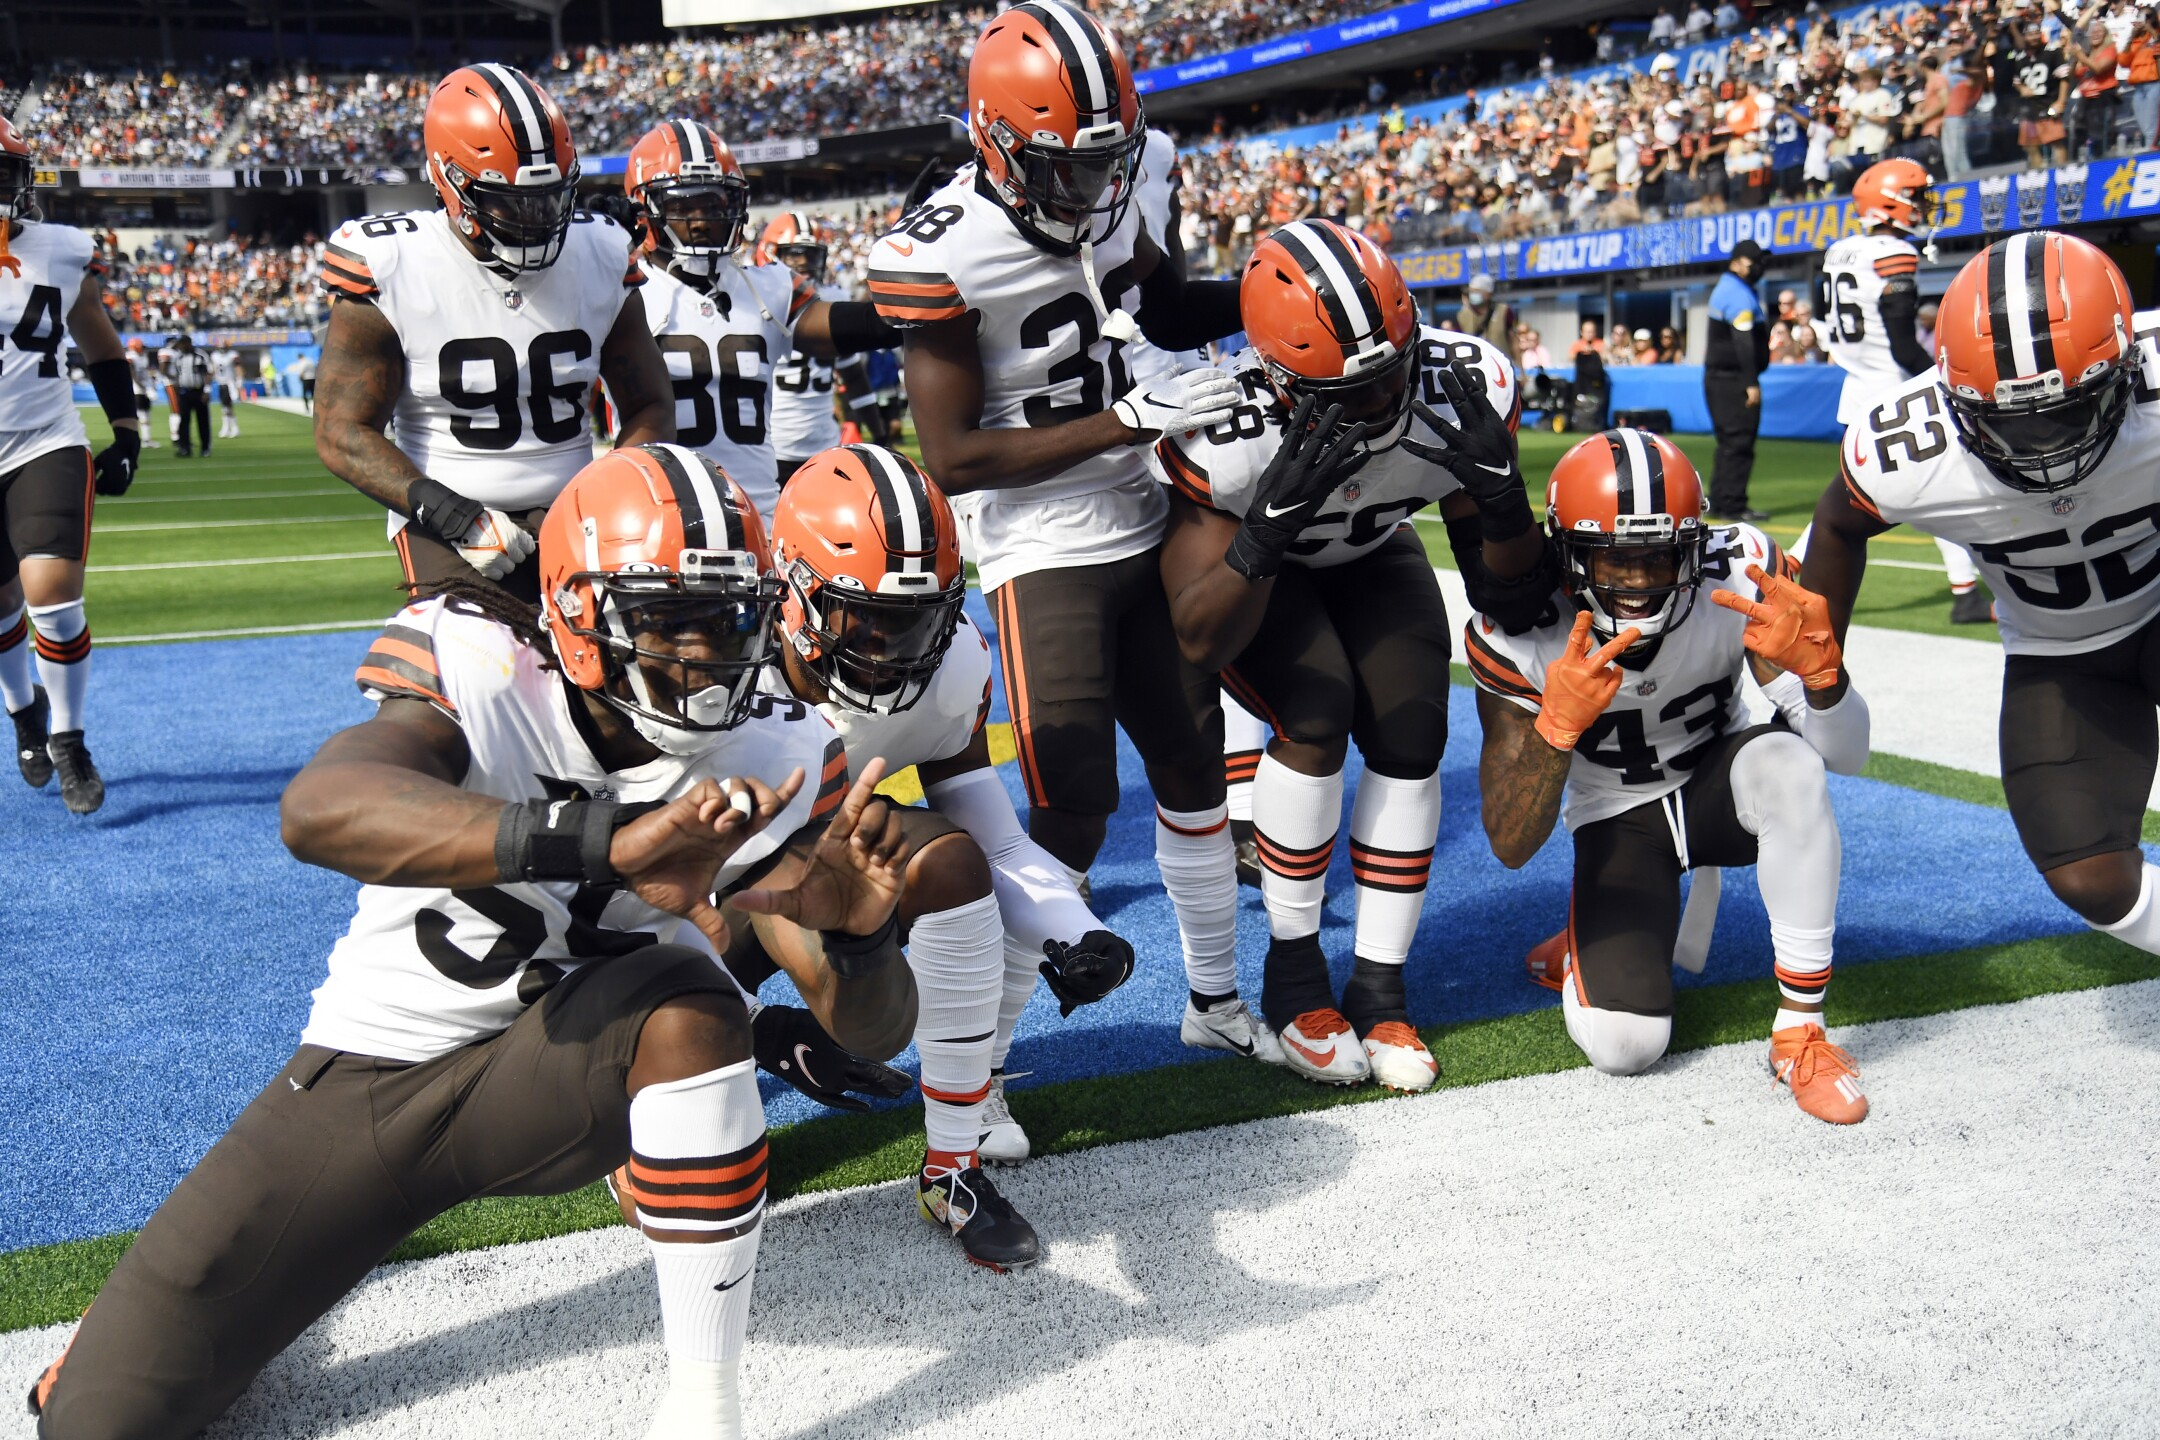 Browns Chargers Football